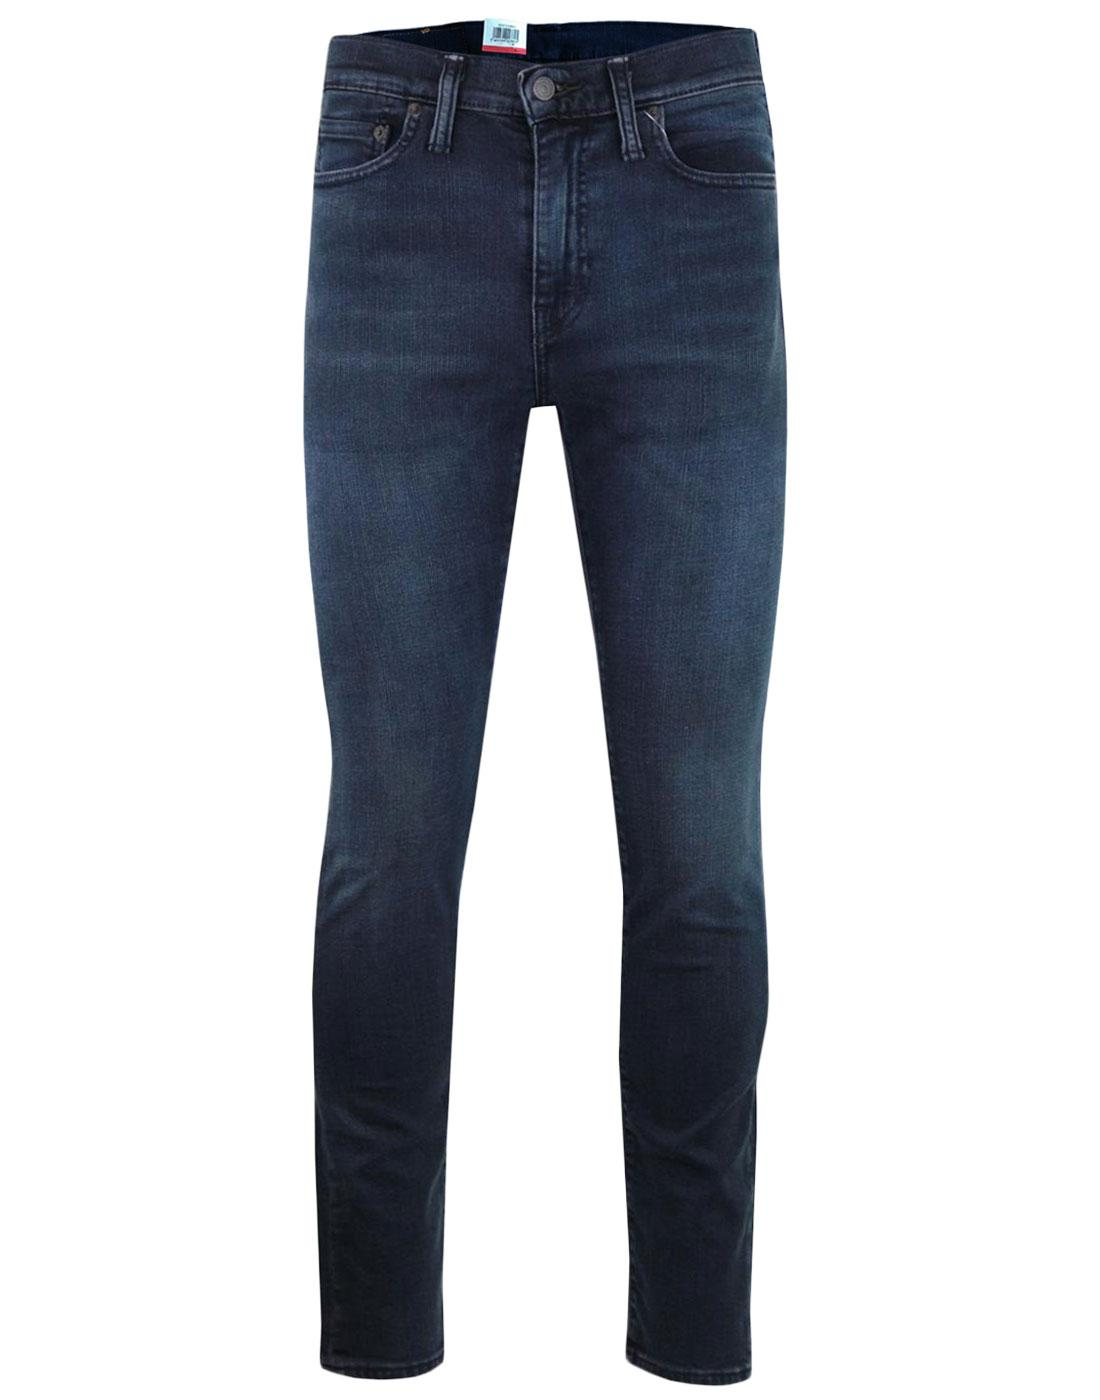 c80e6fcb LEVI'S 510 Retro Indie Mod Skinny Fit Jeans in Eyser Blue